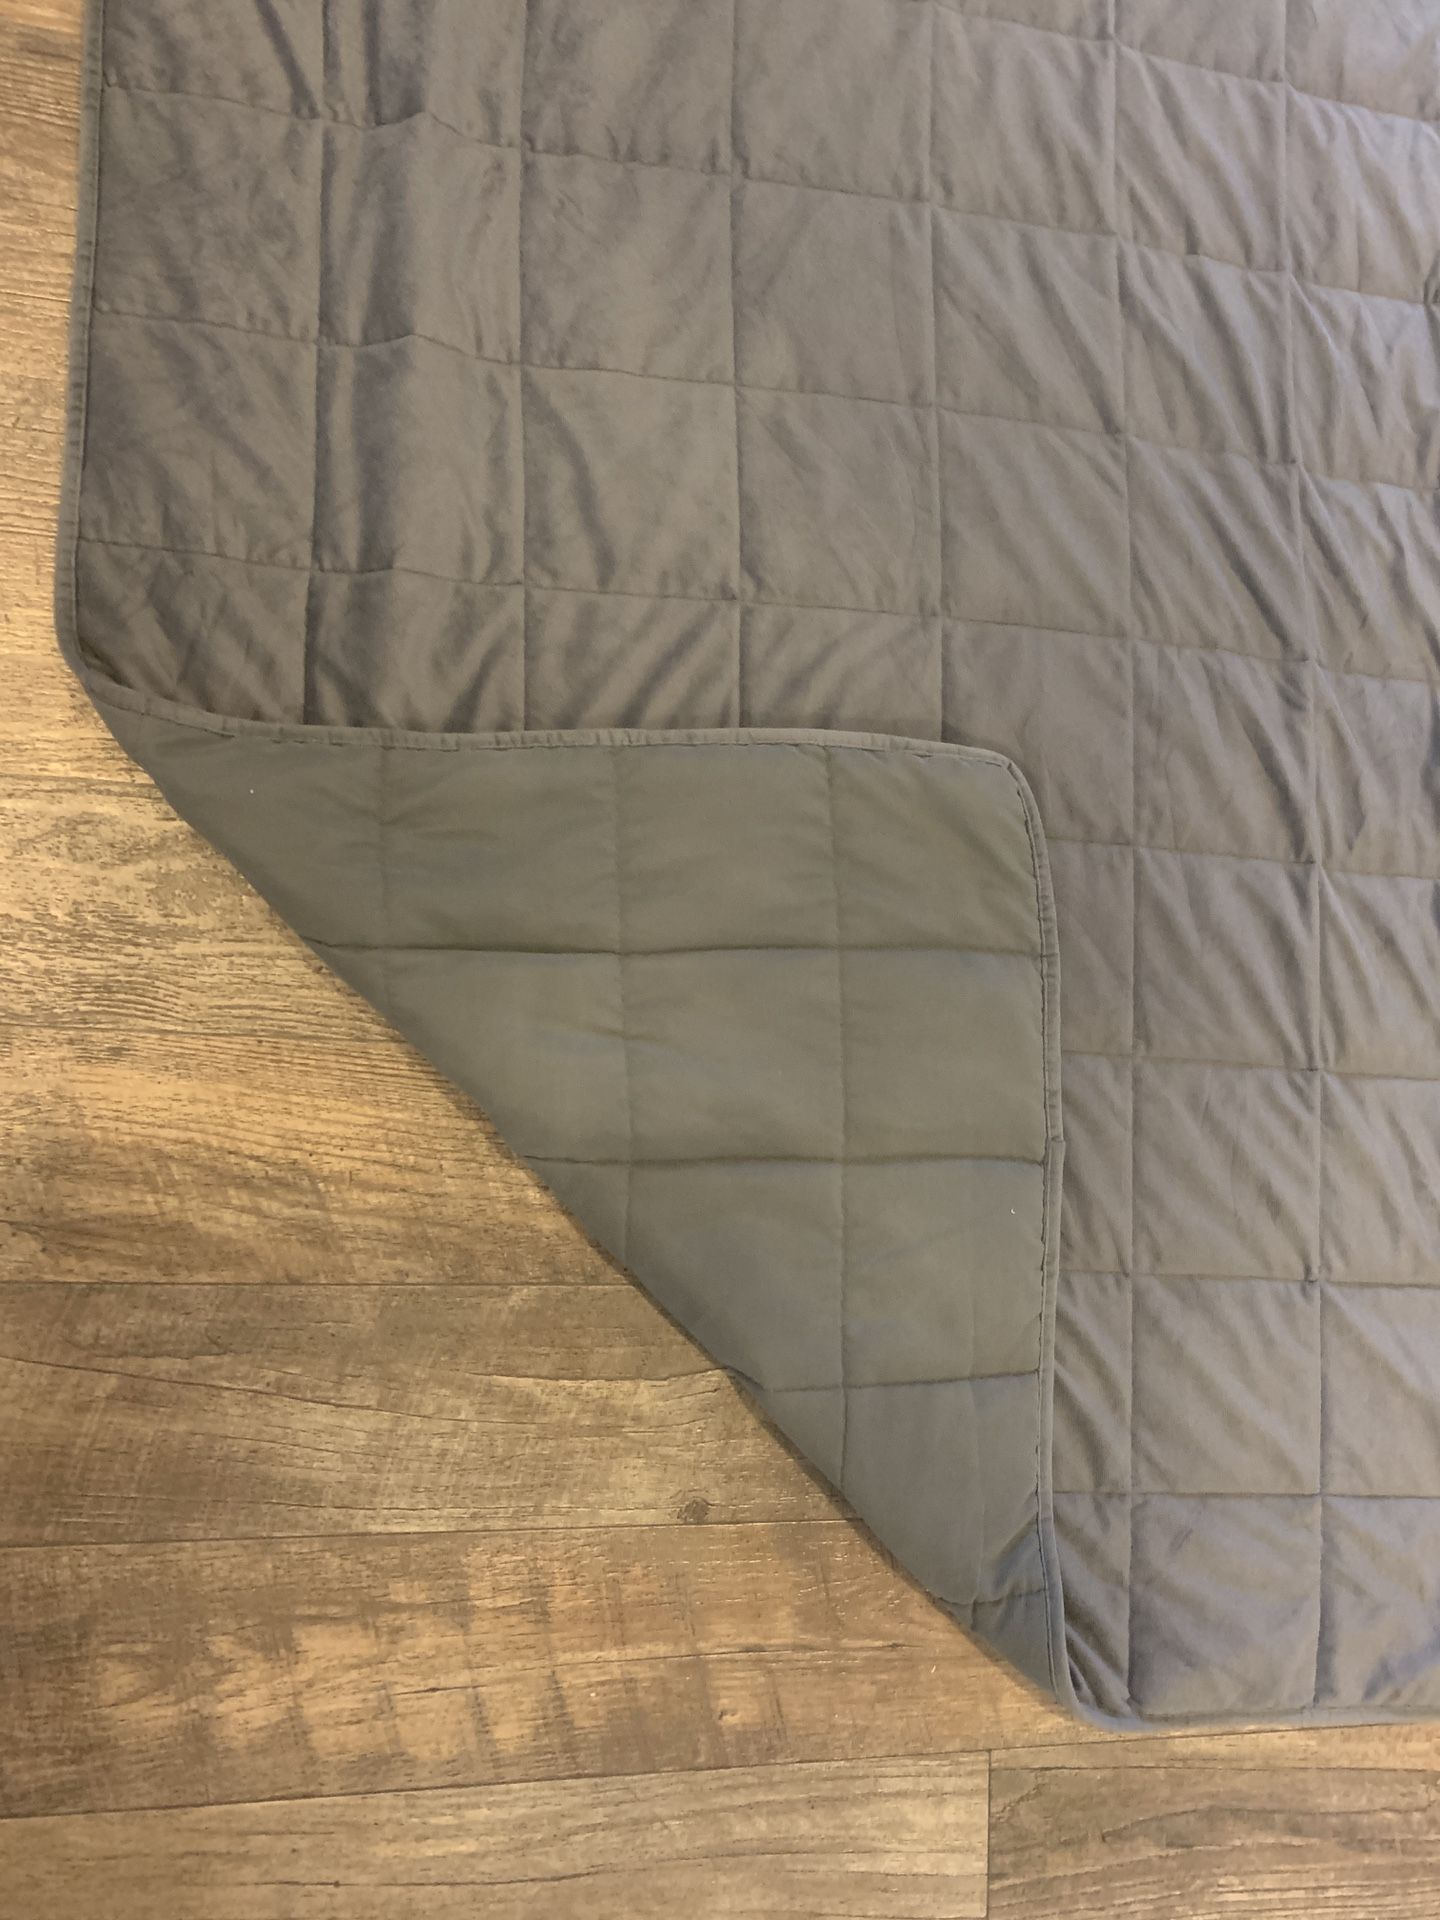 Weighted blanket 12 lbs